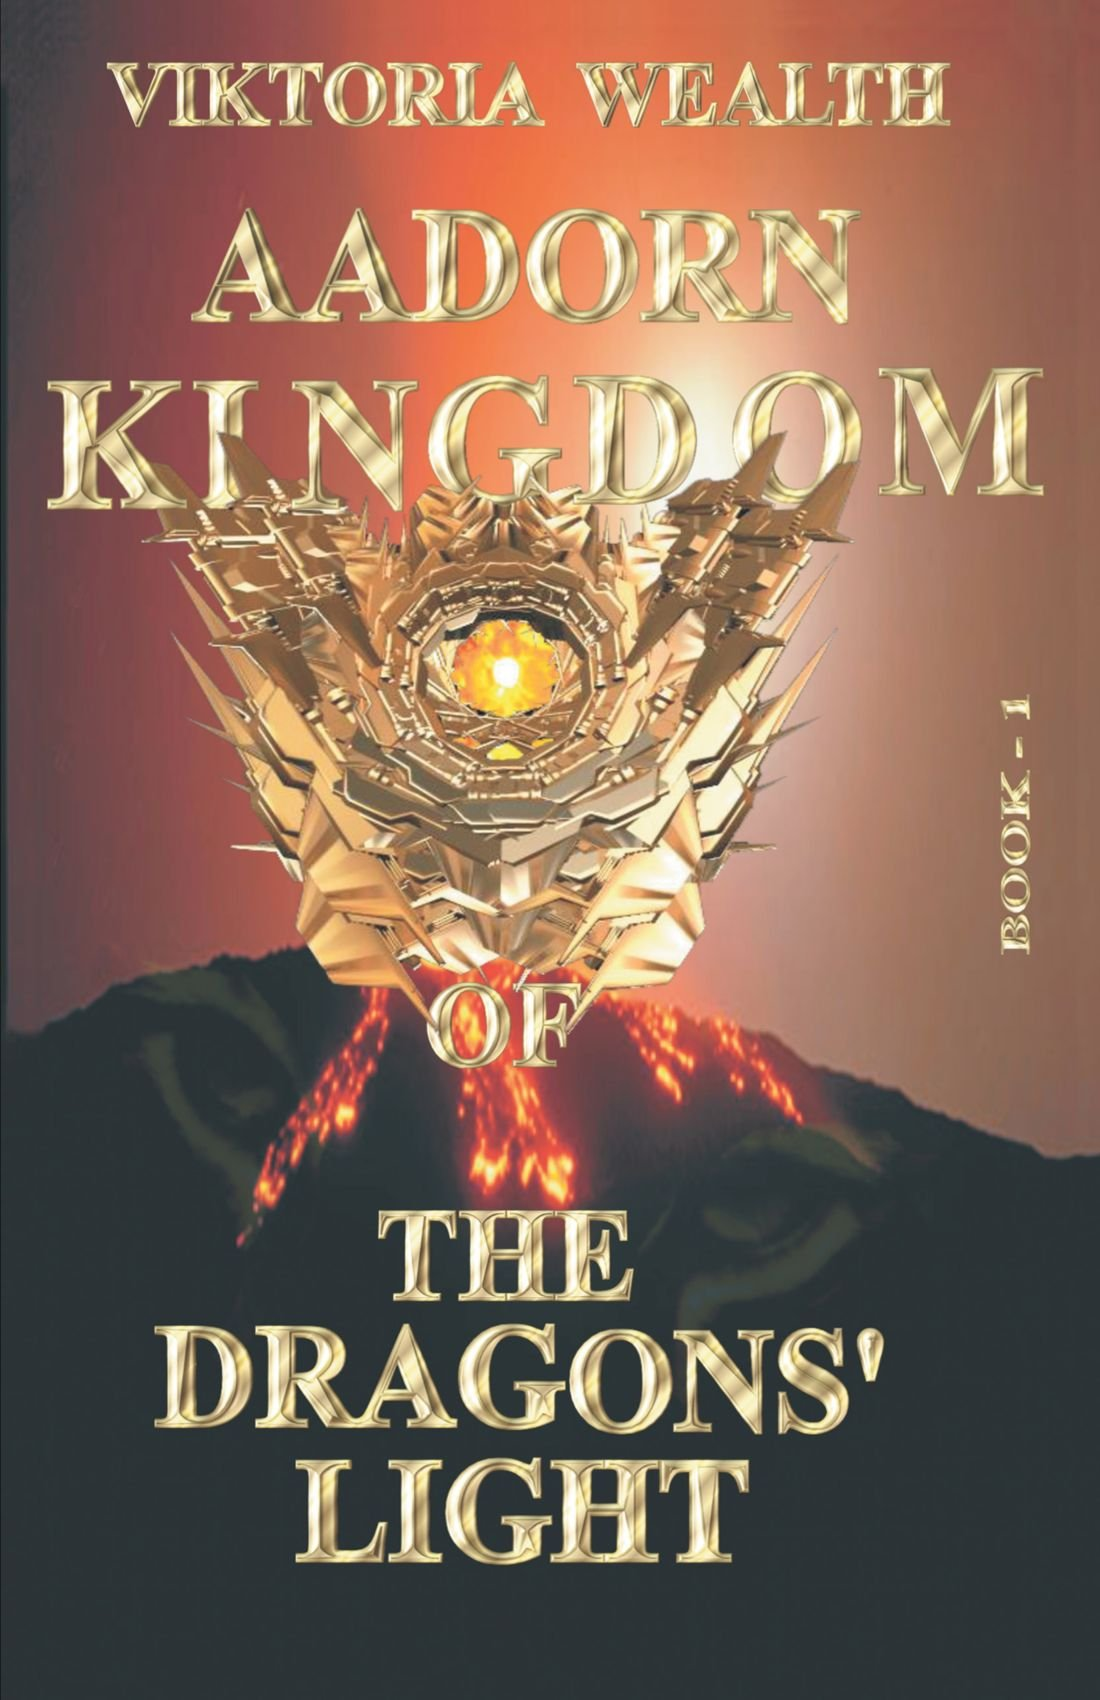 Download AADORN KINGDOM OF THE DRAGONS' LIGHT: Book-I pdf epub